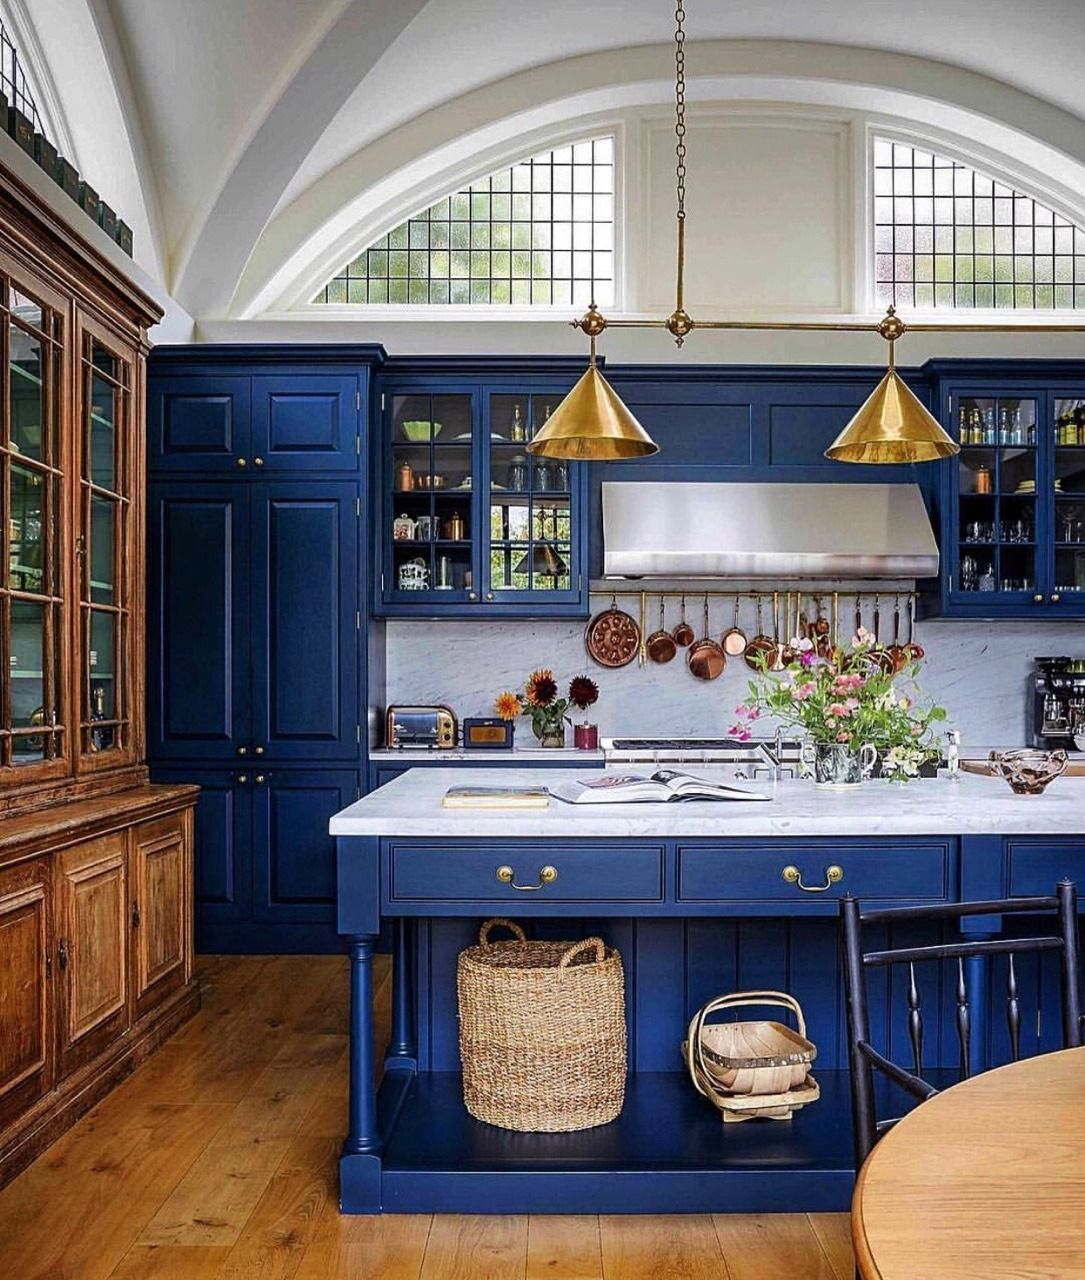 Great Old World Style Kitchen With Royal Blue Cabinets Kitchen